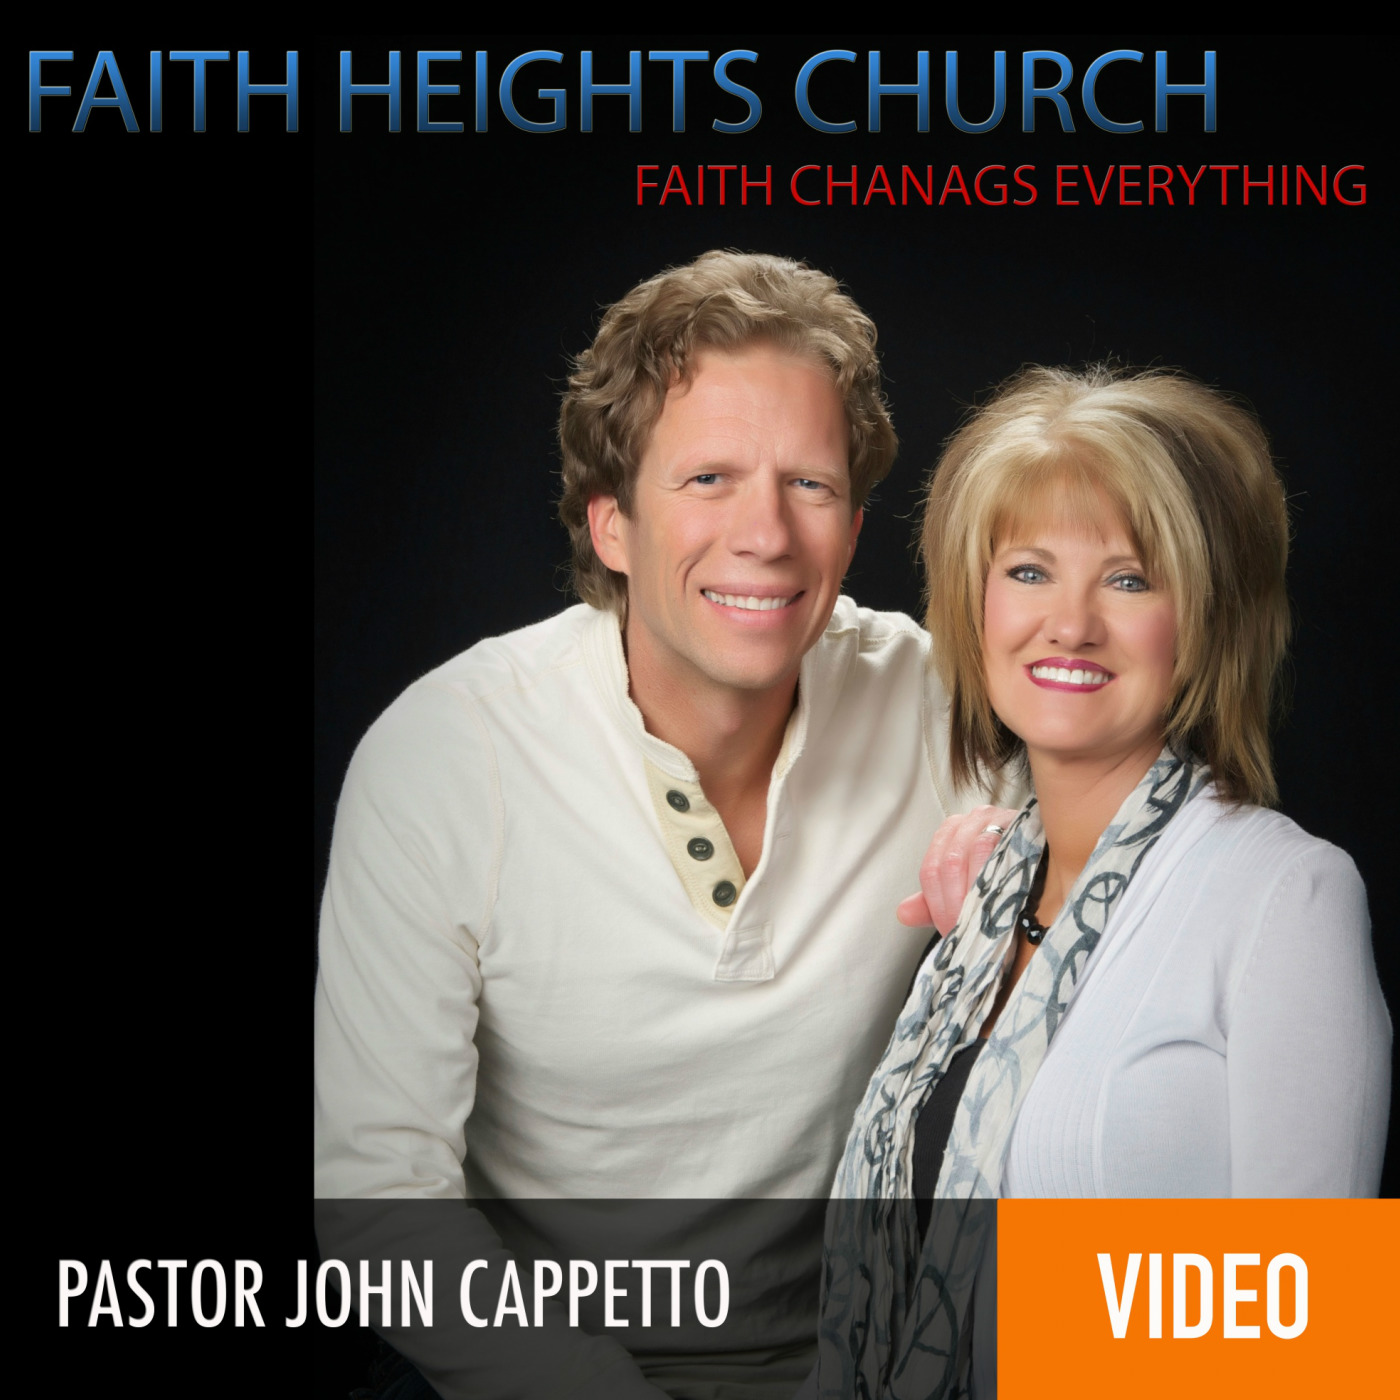 Faith Heights Church Video Podcast